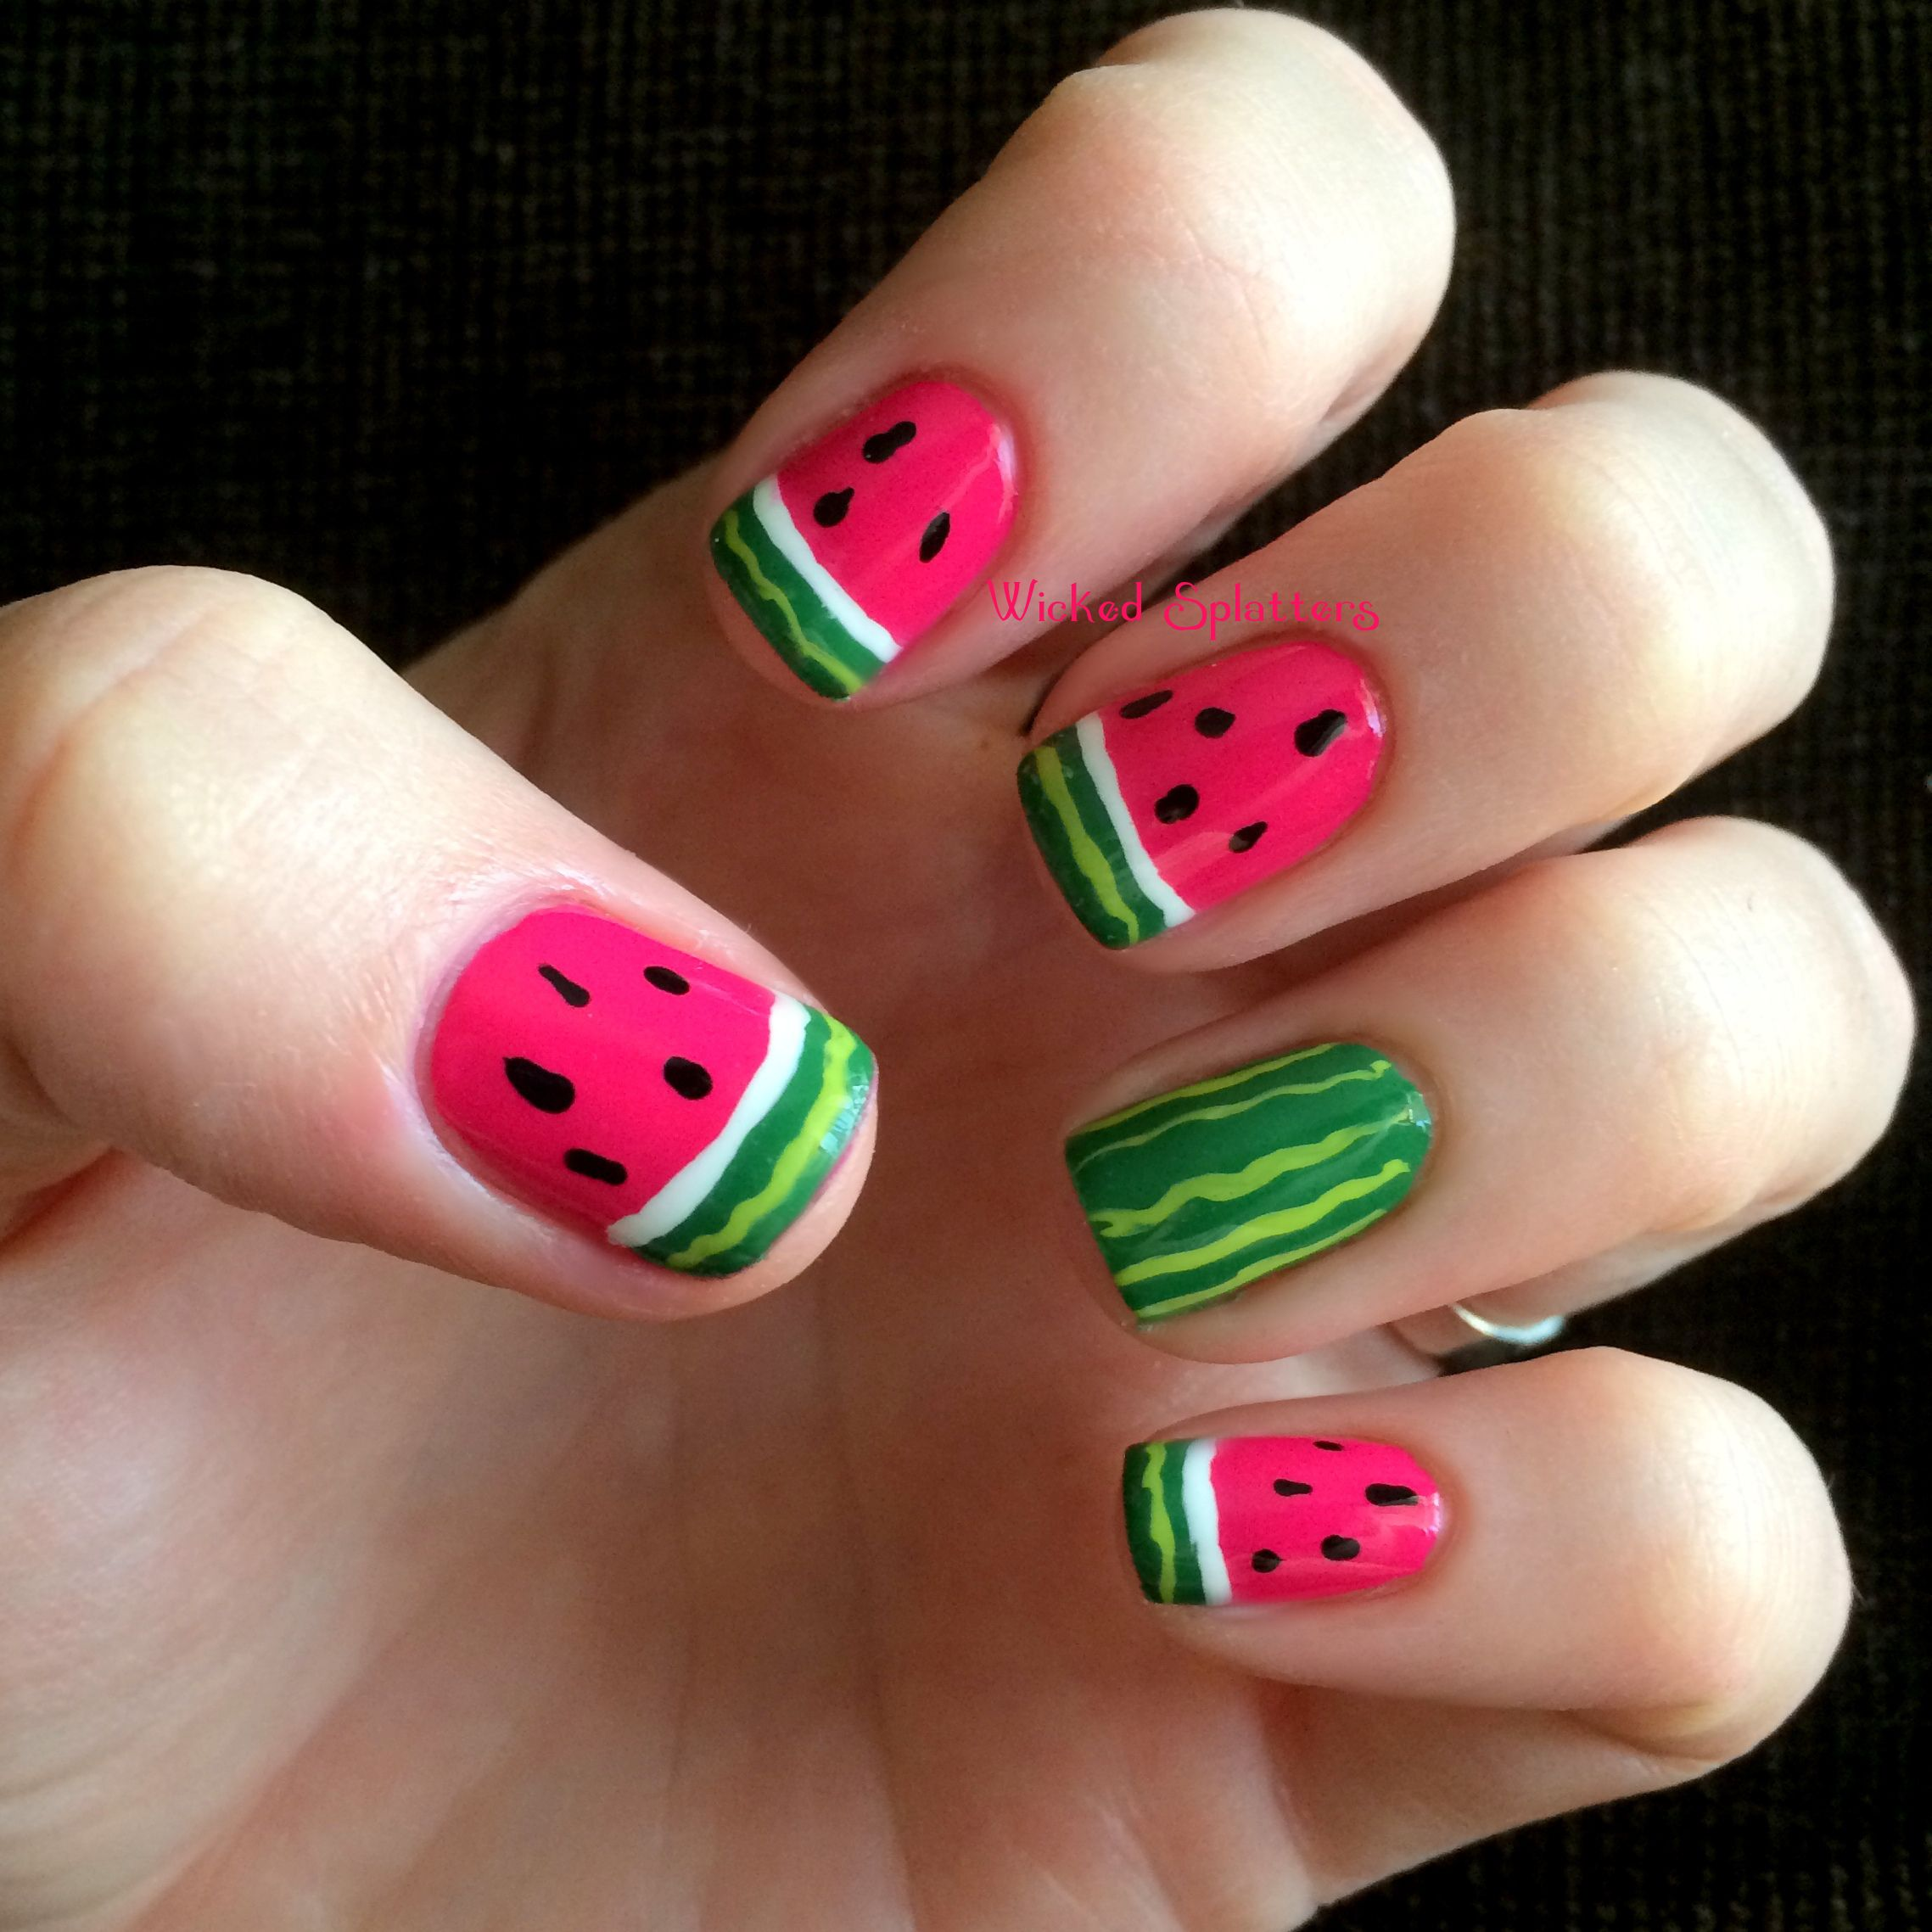 Latest teenage nail art design collection 2014 best teen fashion latest teenage nail art design collection 2014 best teen fashion prinsesfo Images